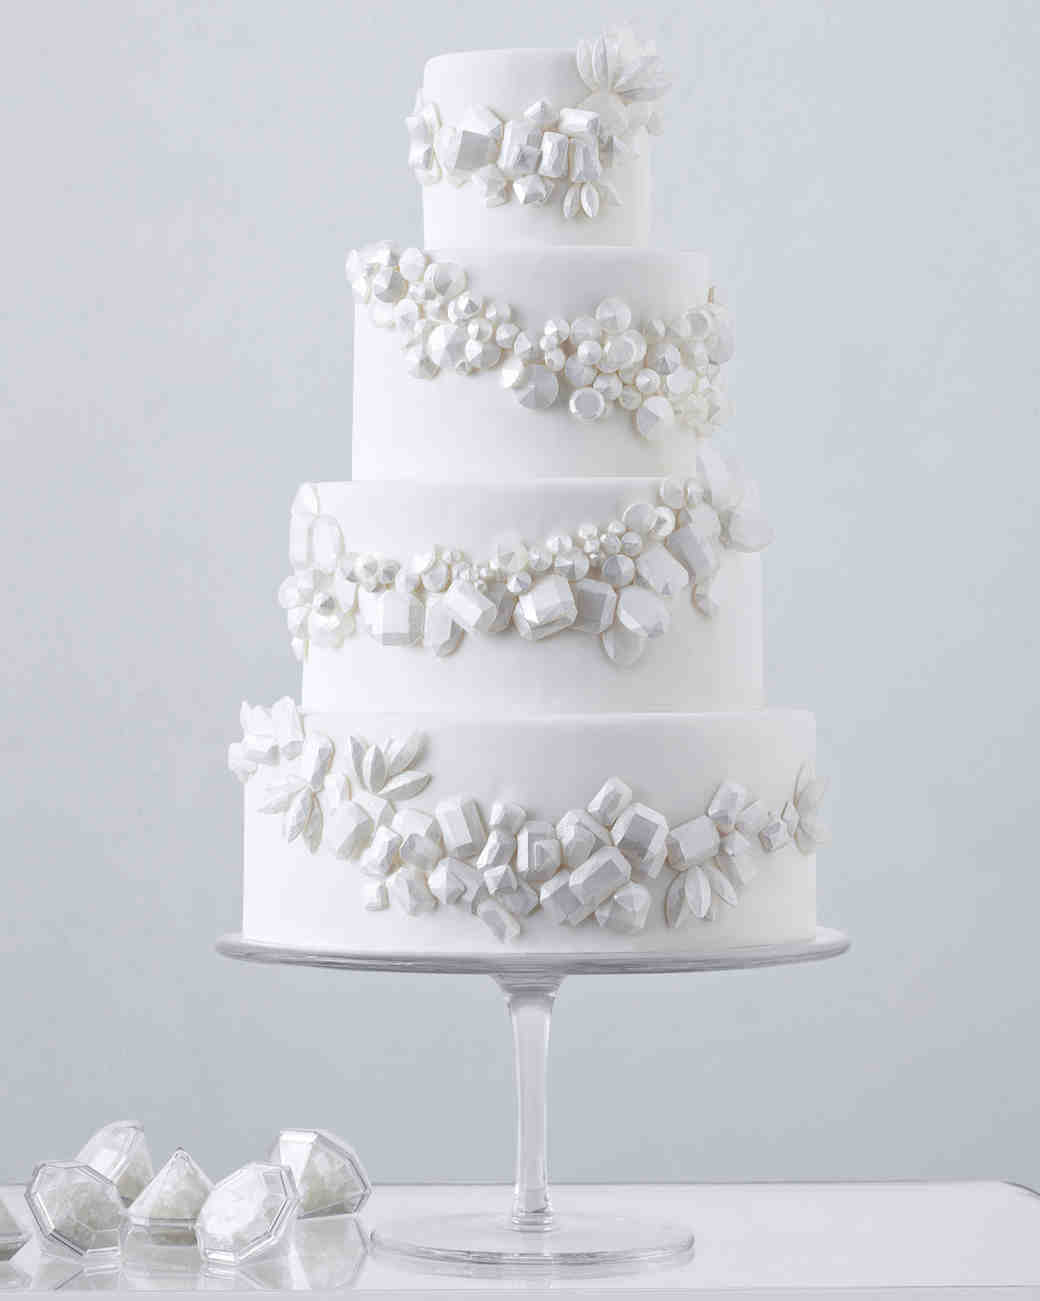 Four-Tiered White Wedding Cake with White Candy Gems